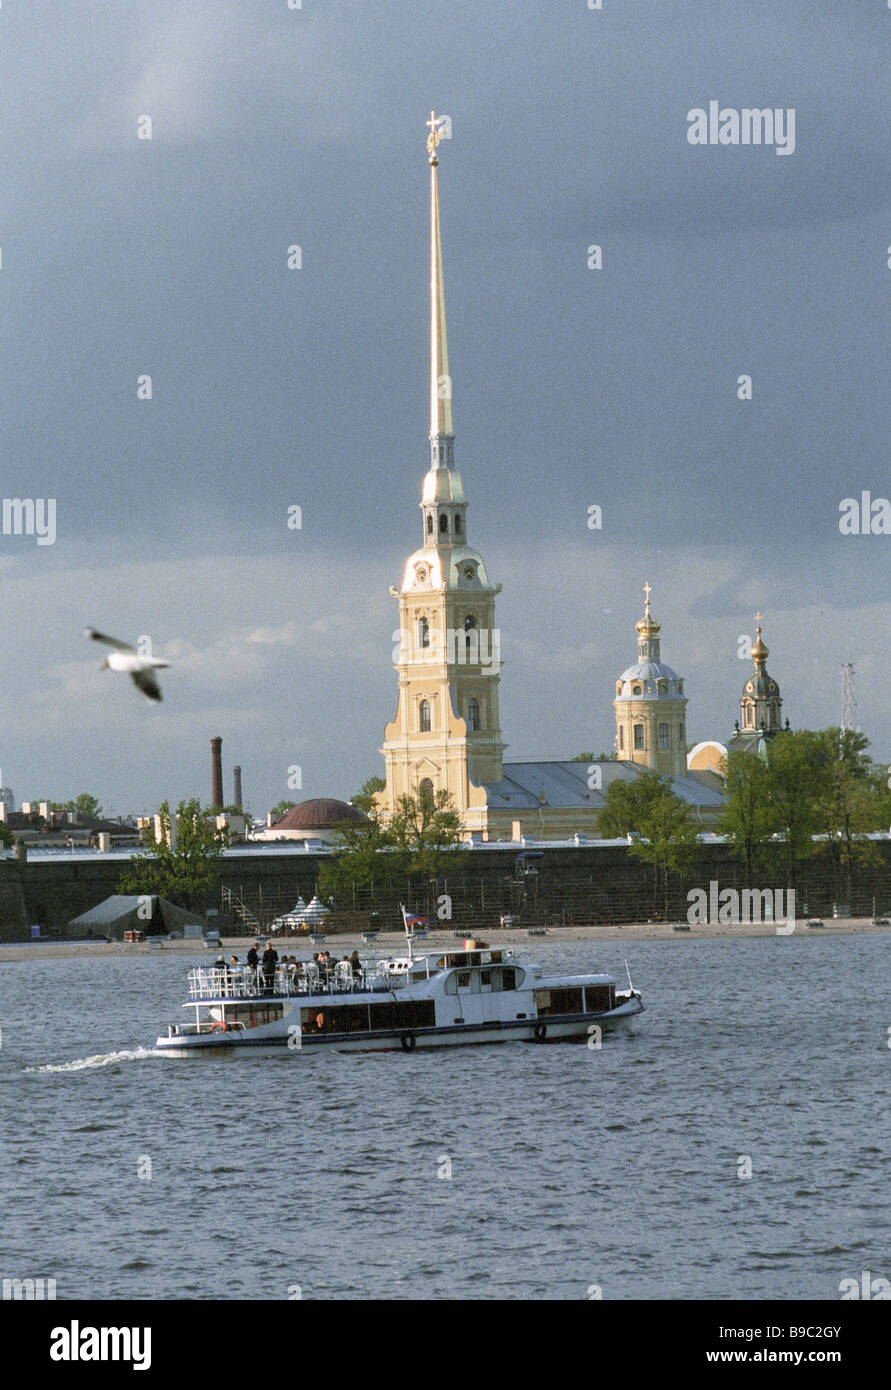 Saints Peter and Paul Fortress in St Petersburg - Stock Image